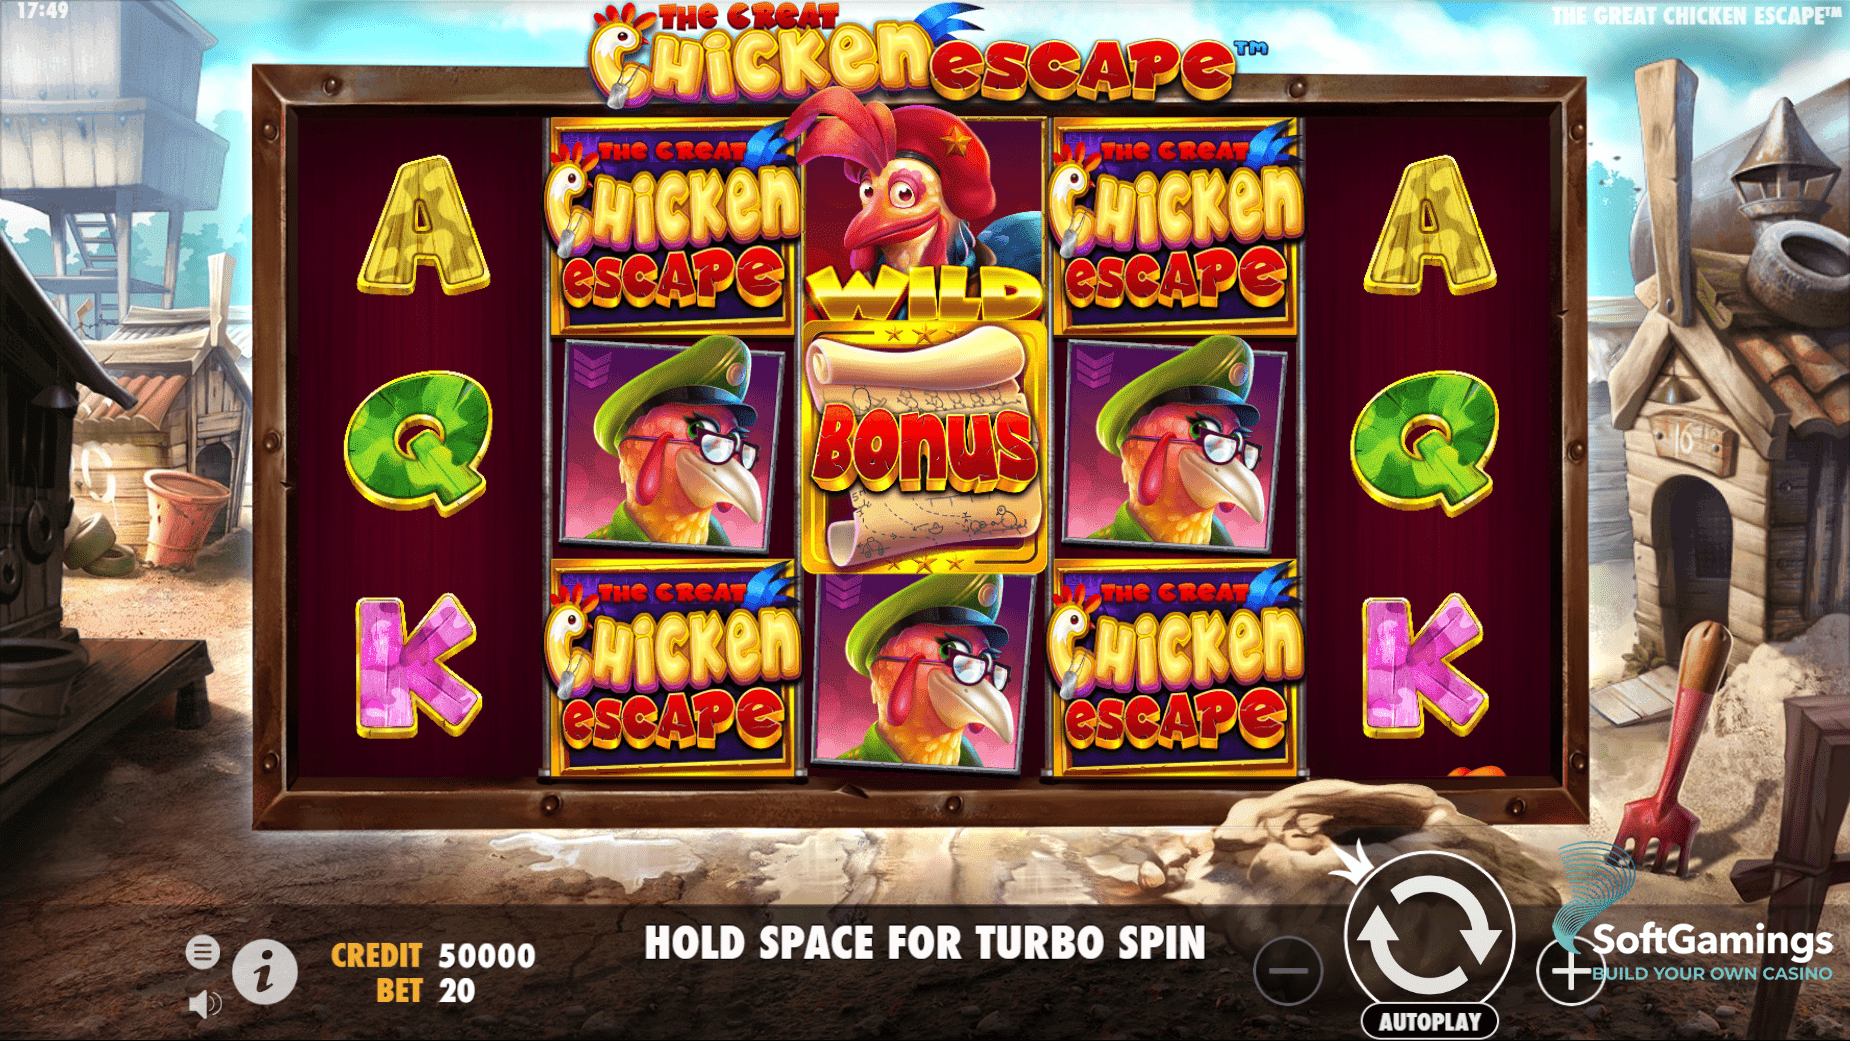 The Great Chicken Escape Slot Machine - How to Play